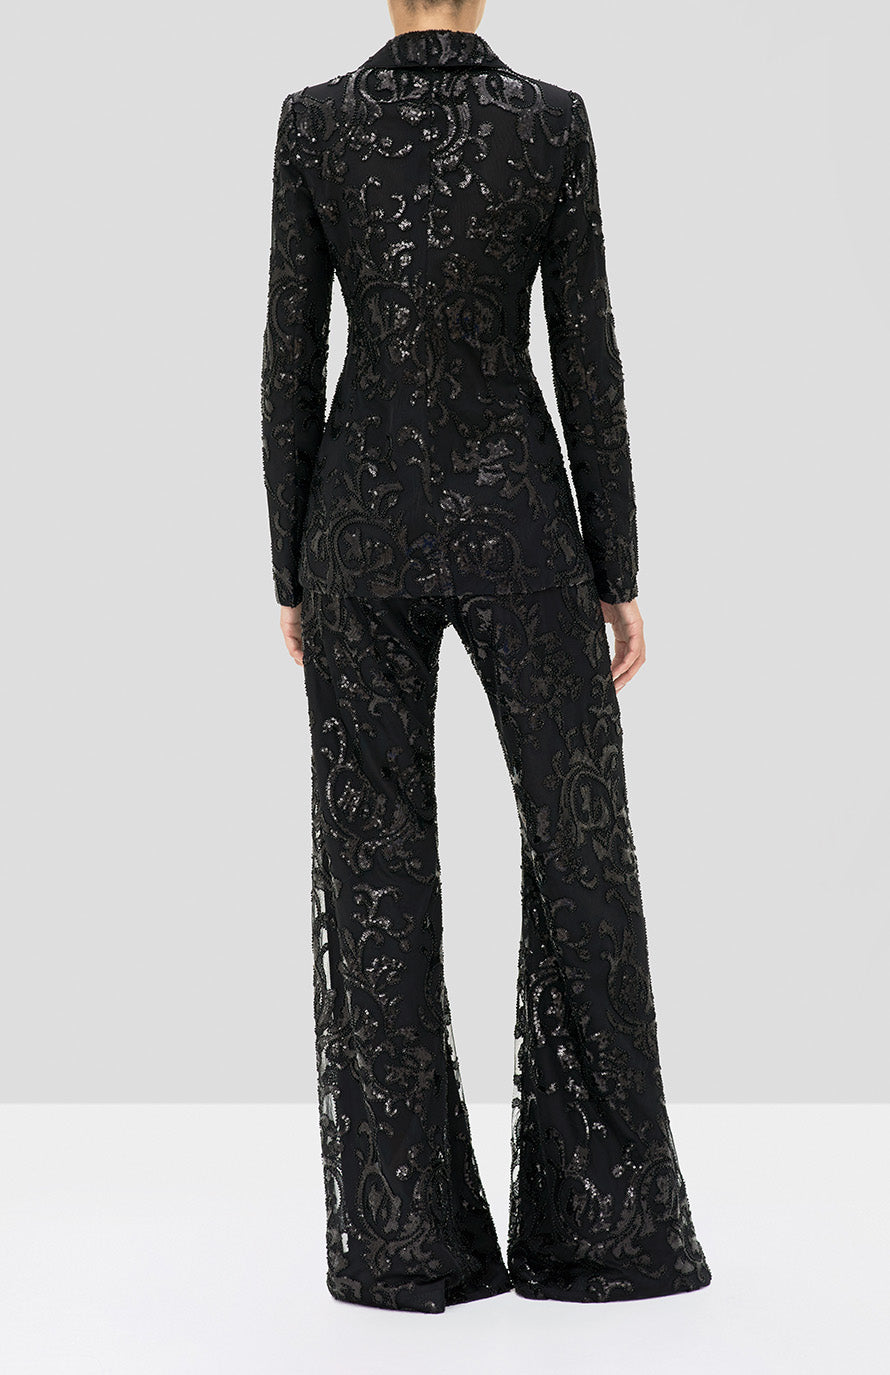 Alexis Silvestro Pant and Firdas Jacket in Beaded Black from the Holiday 2019 Collection - Rear View